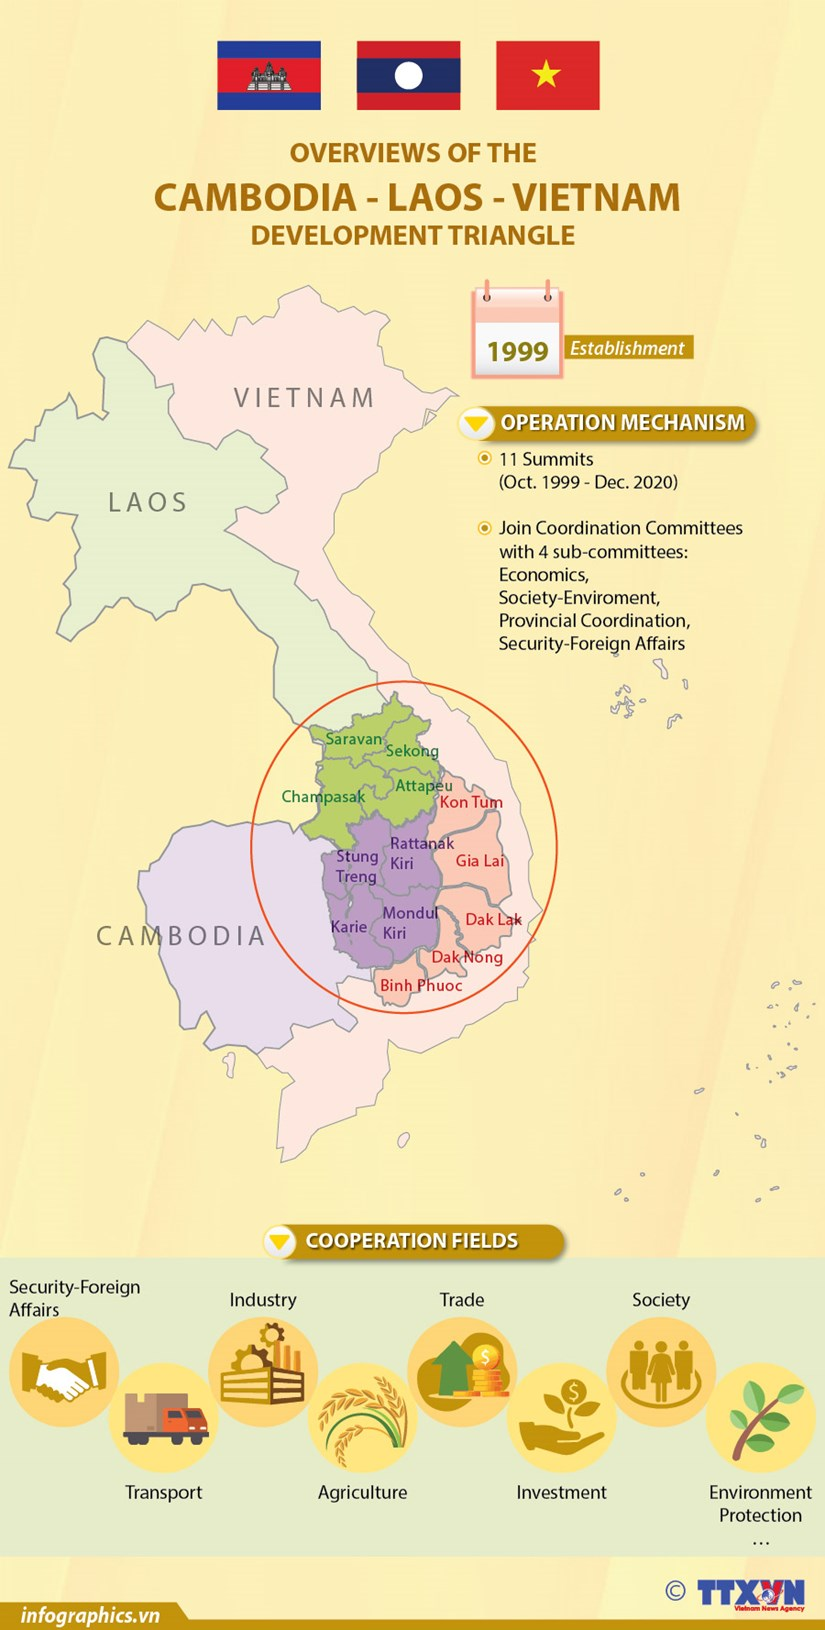 Overviews of the Cambodia-Laos-Vietnam Development Triangle hinh anh 1